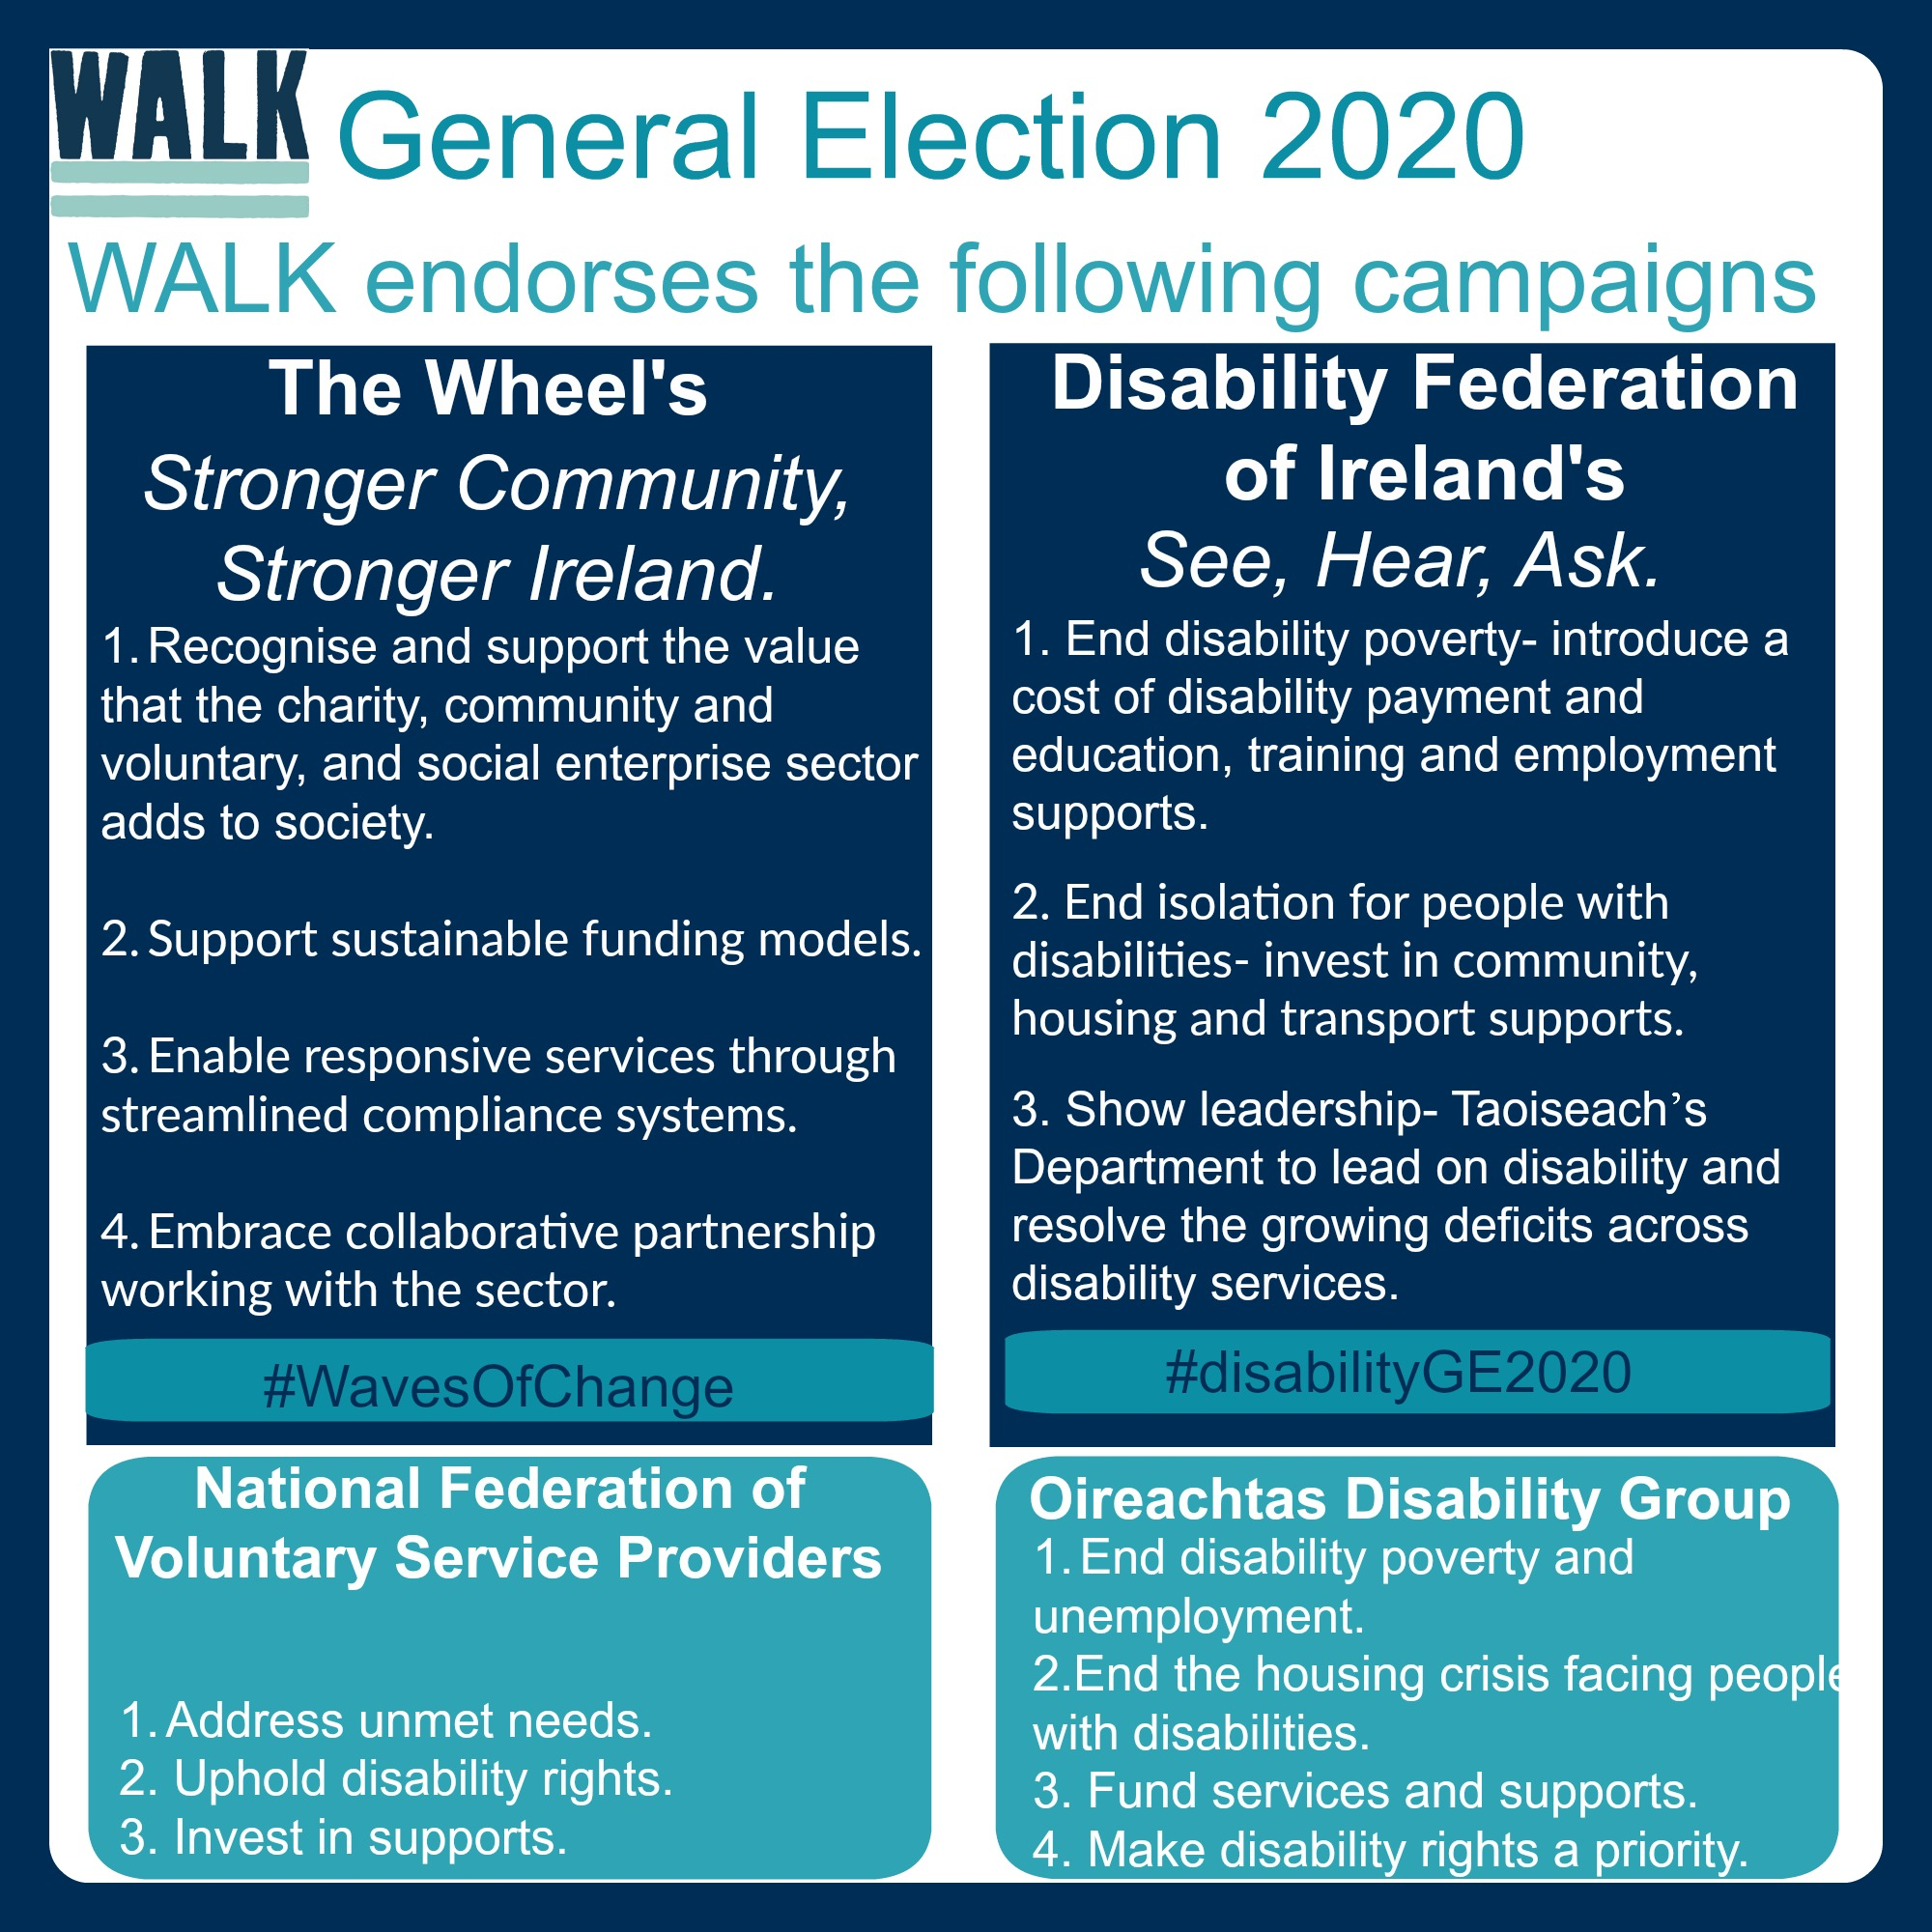 General Election 2020 - WALK's endorsement